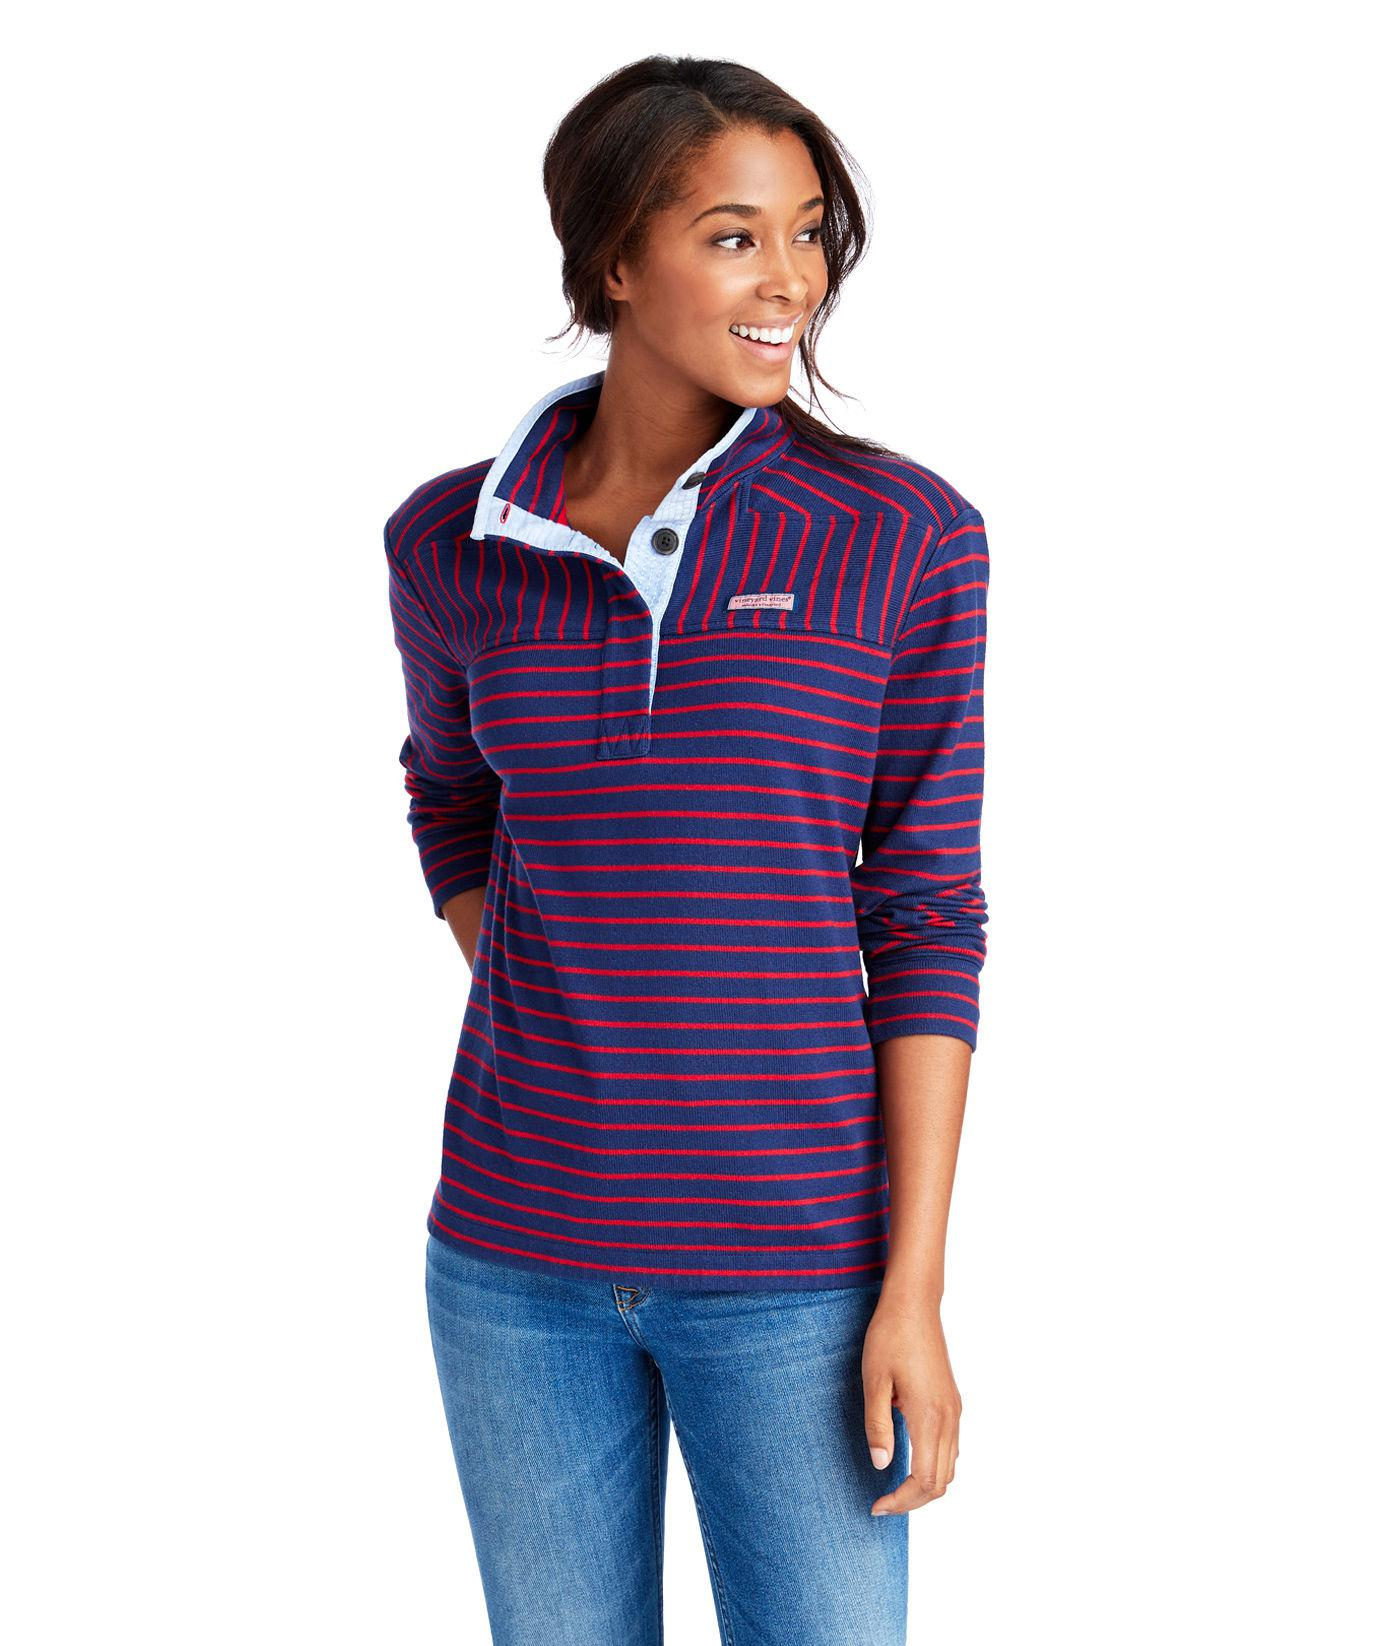 fa17d8e2b Lyst - Vineyard Vines Button-up Shep Shirt in Purple